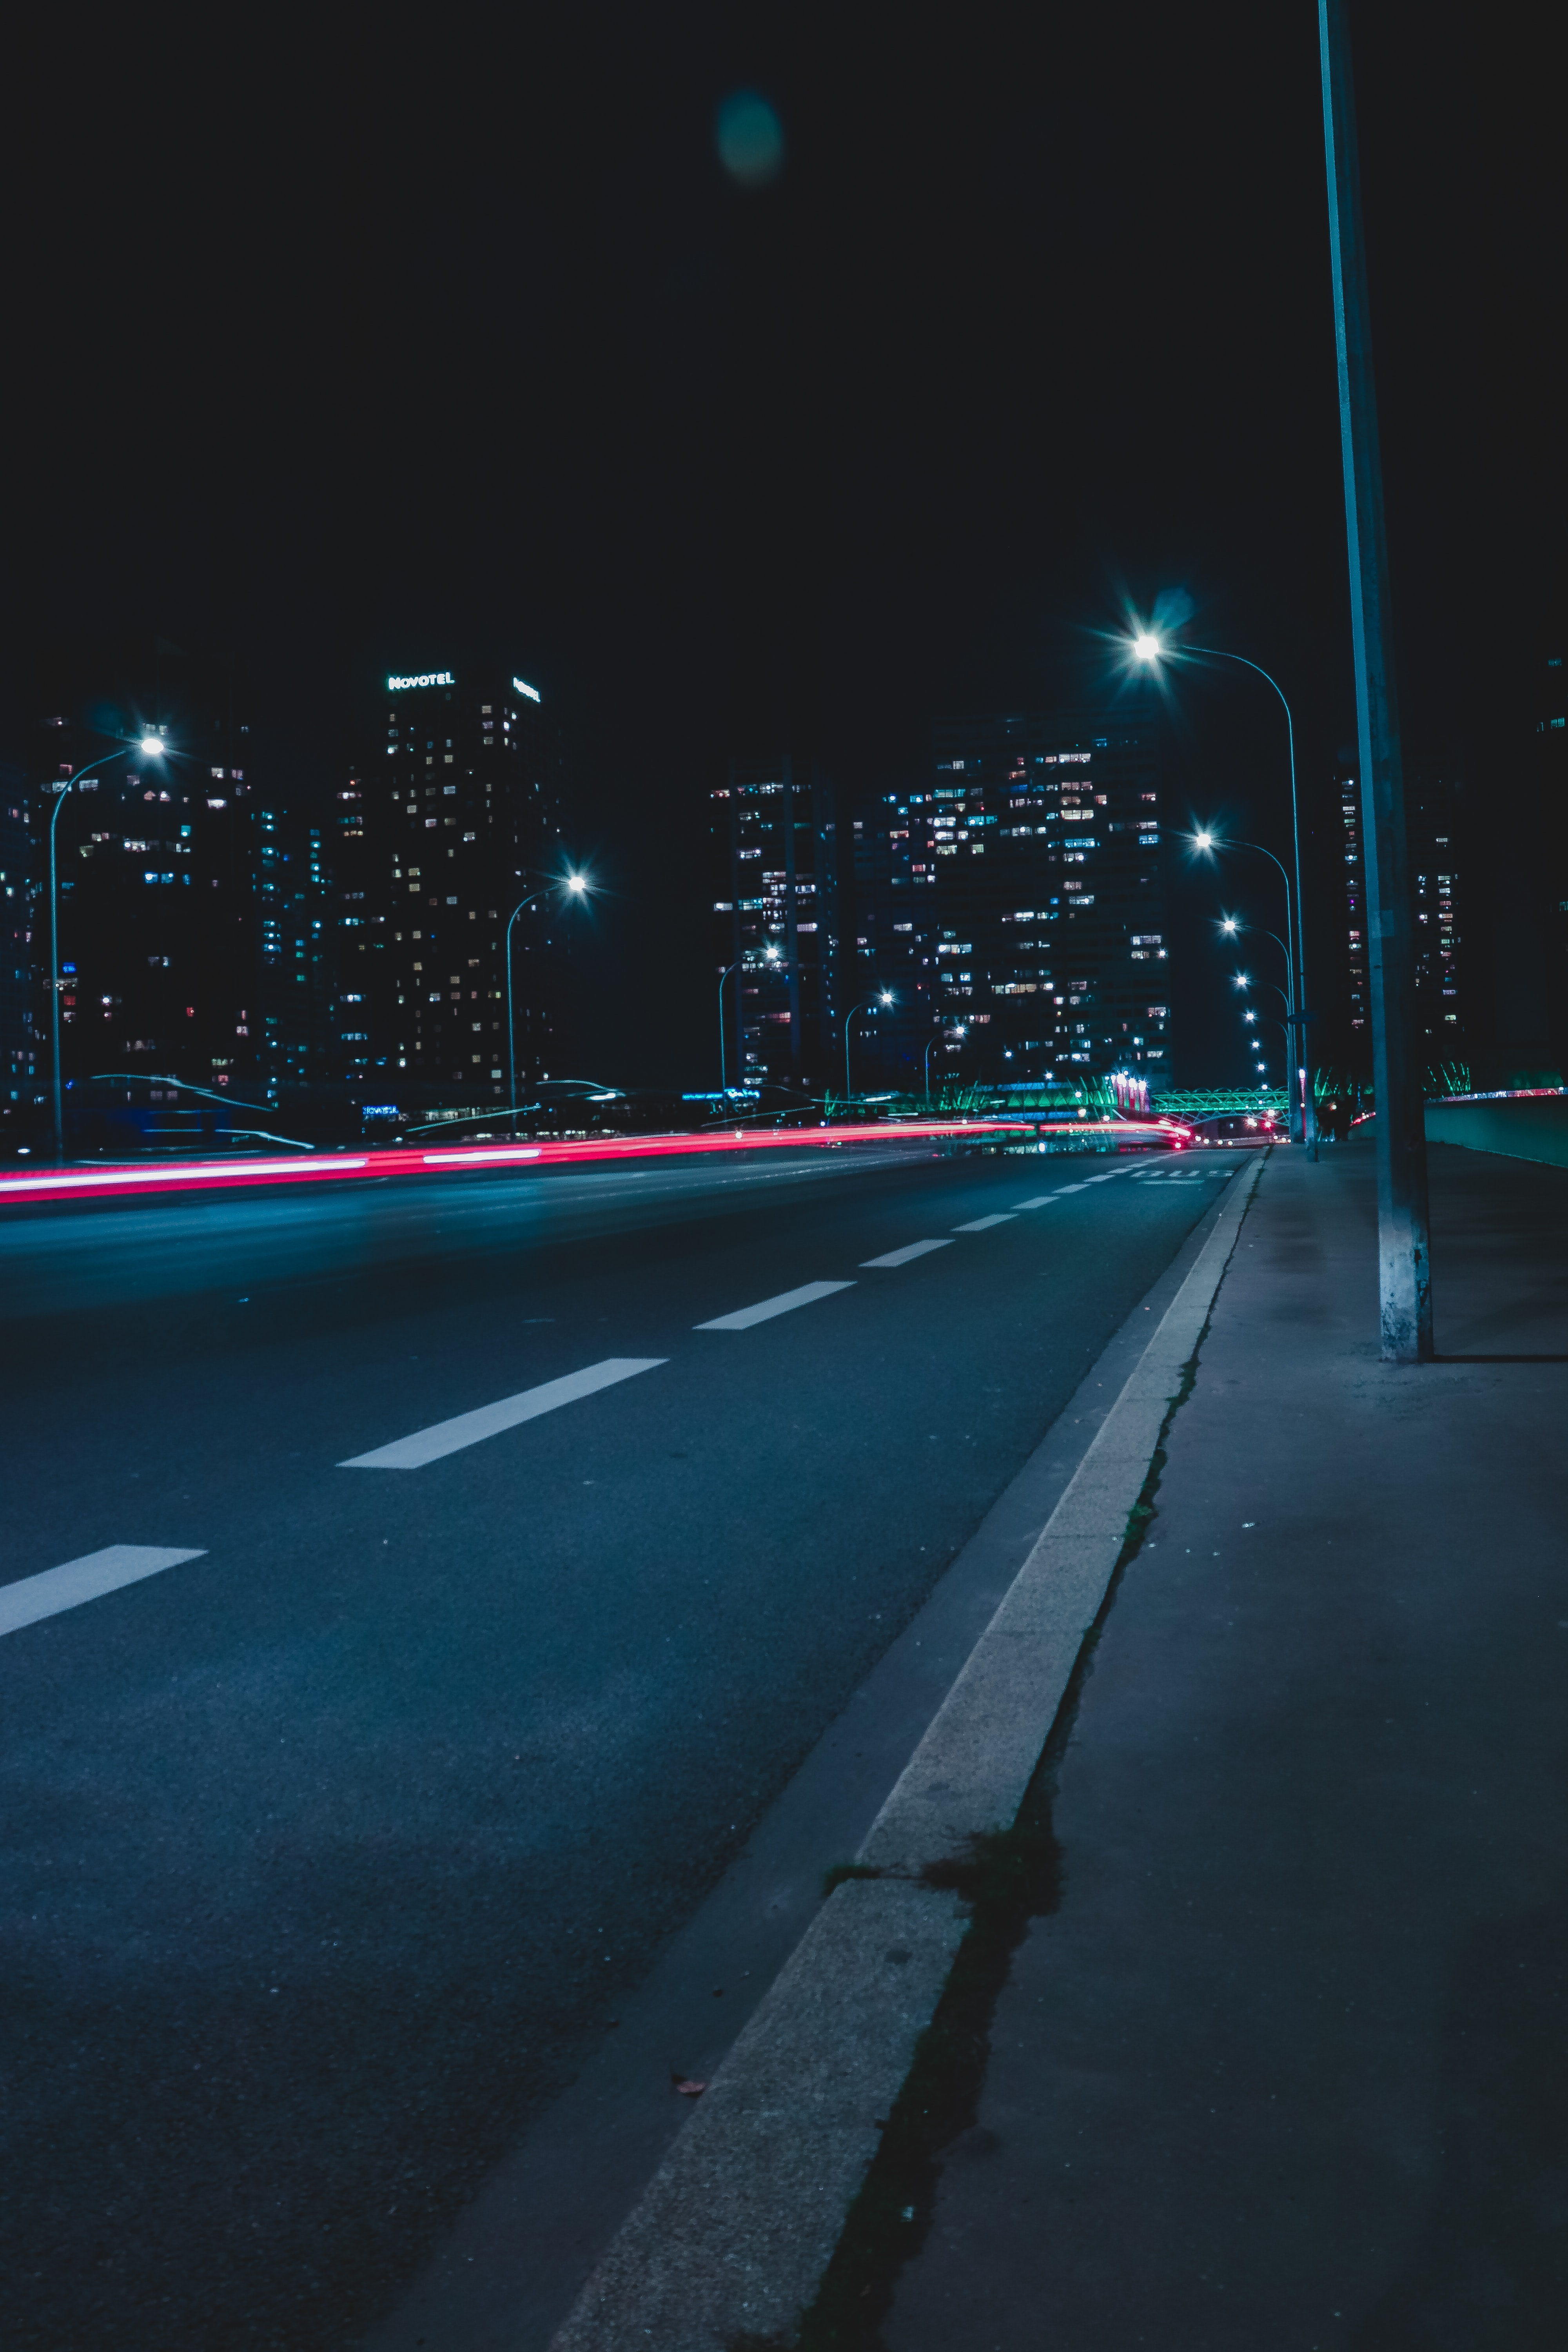 empty street with lights during nighttime